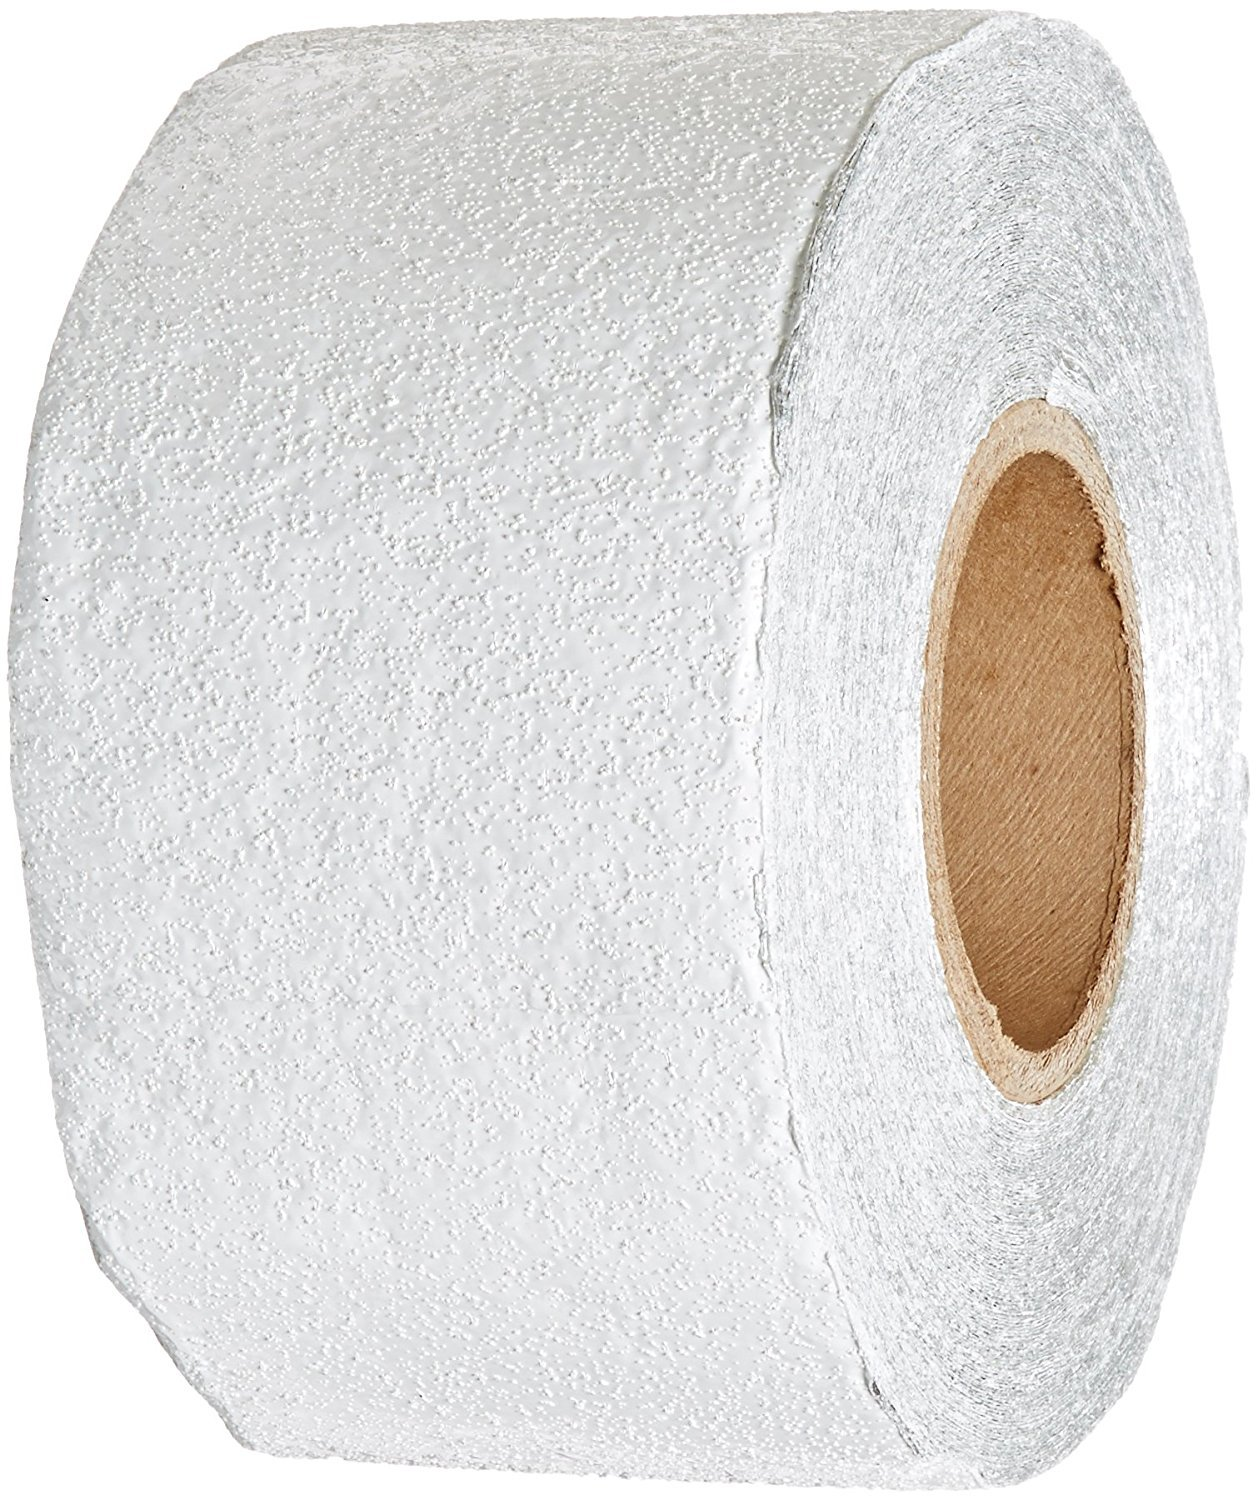 ifloortape White Reflective Foil Pavement Marking Tape Conforms to Asphalt Concrete Surface 4 Inch x 150 Foot Roll